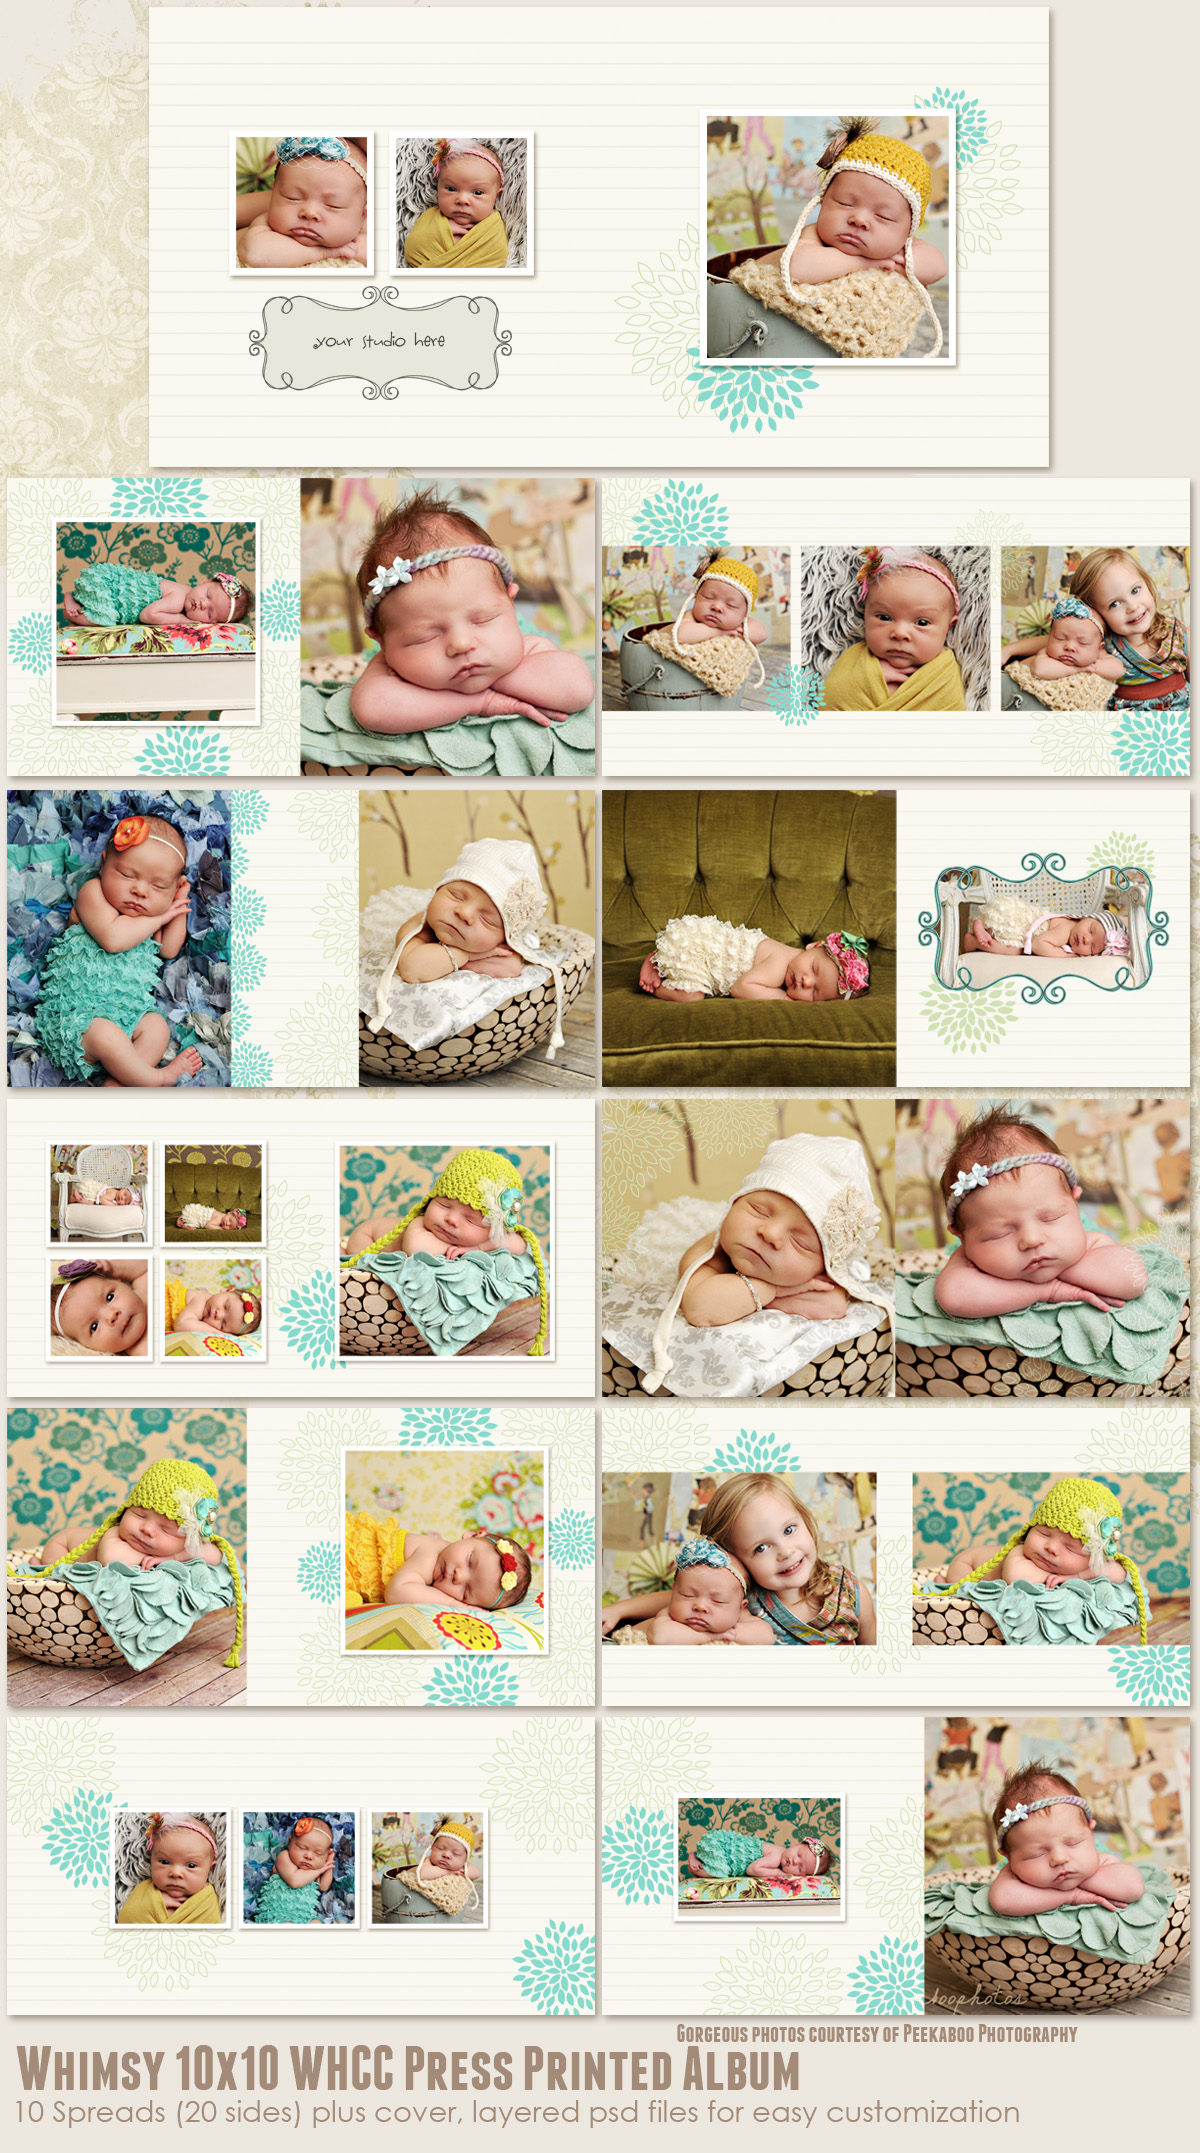 Whimsy 10x10 WHCC Press Printed Album